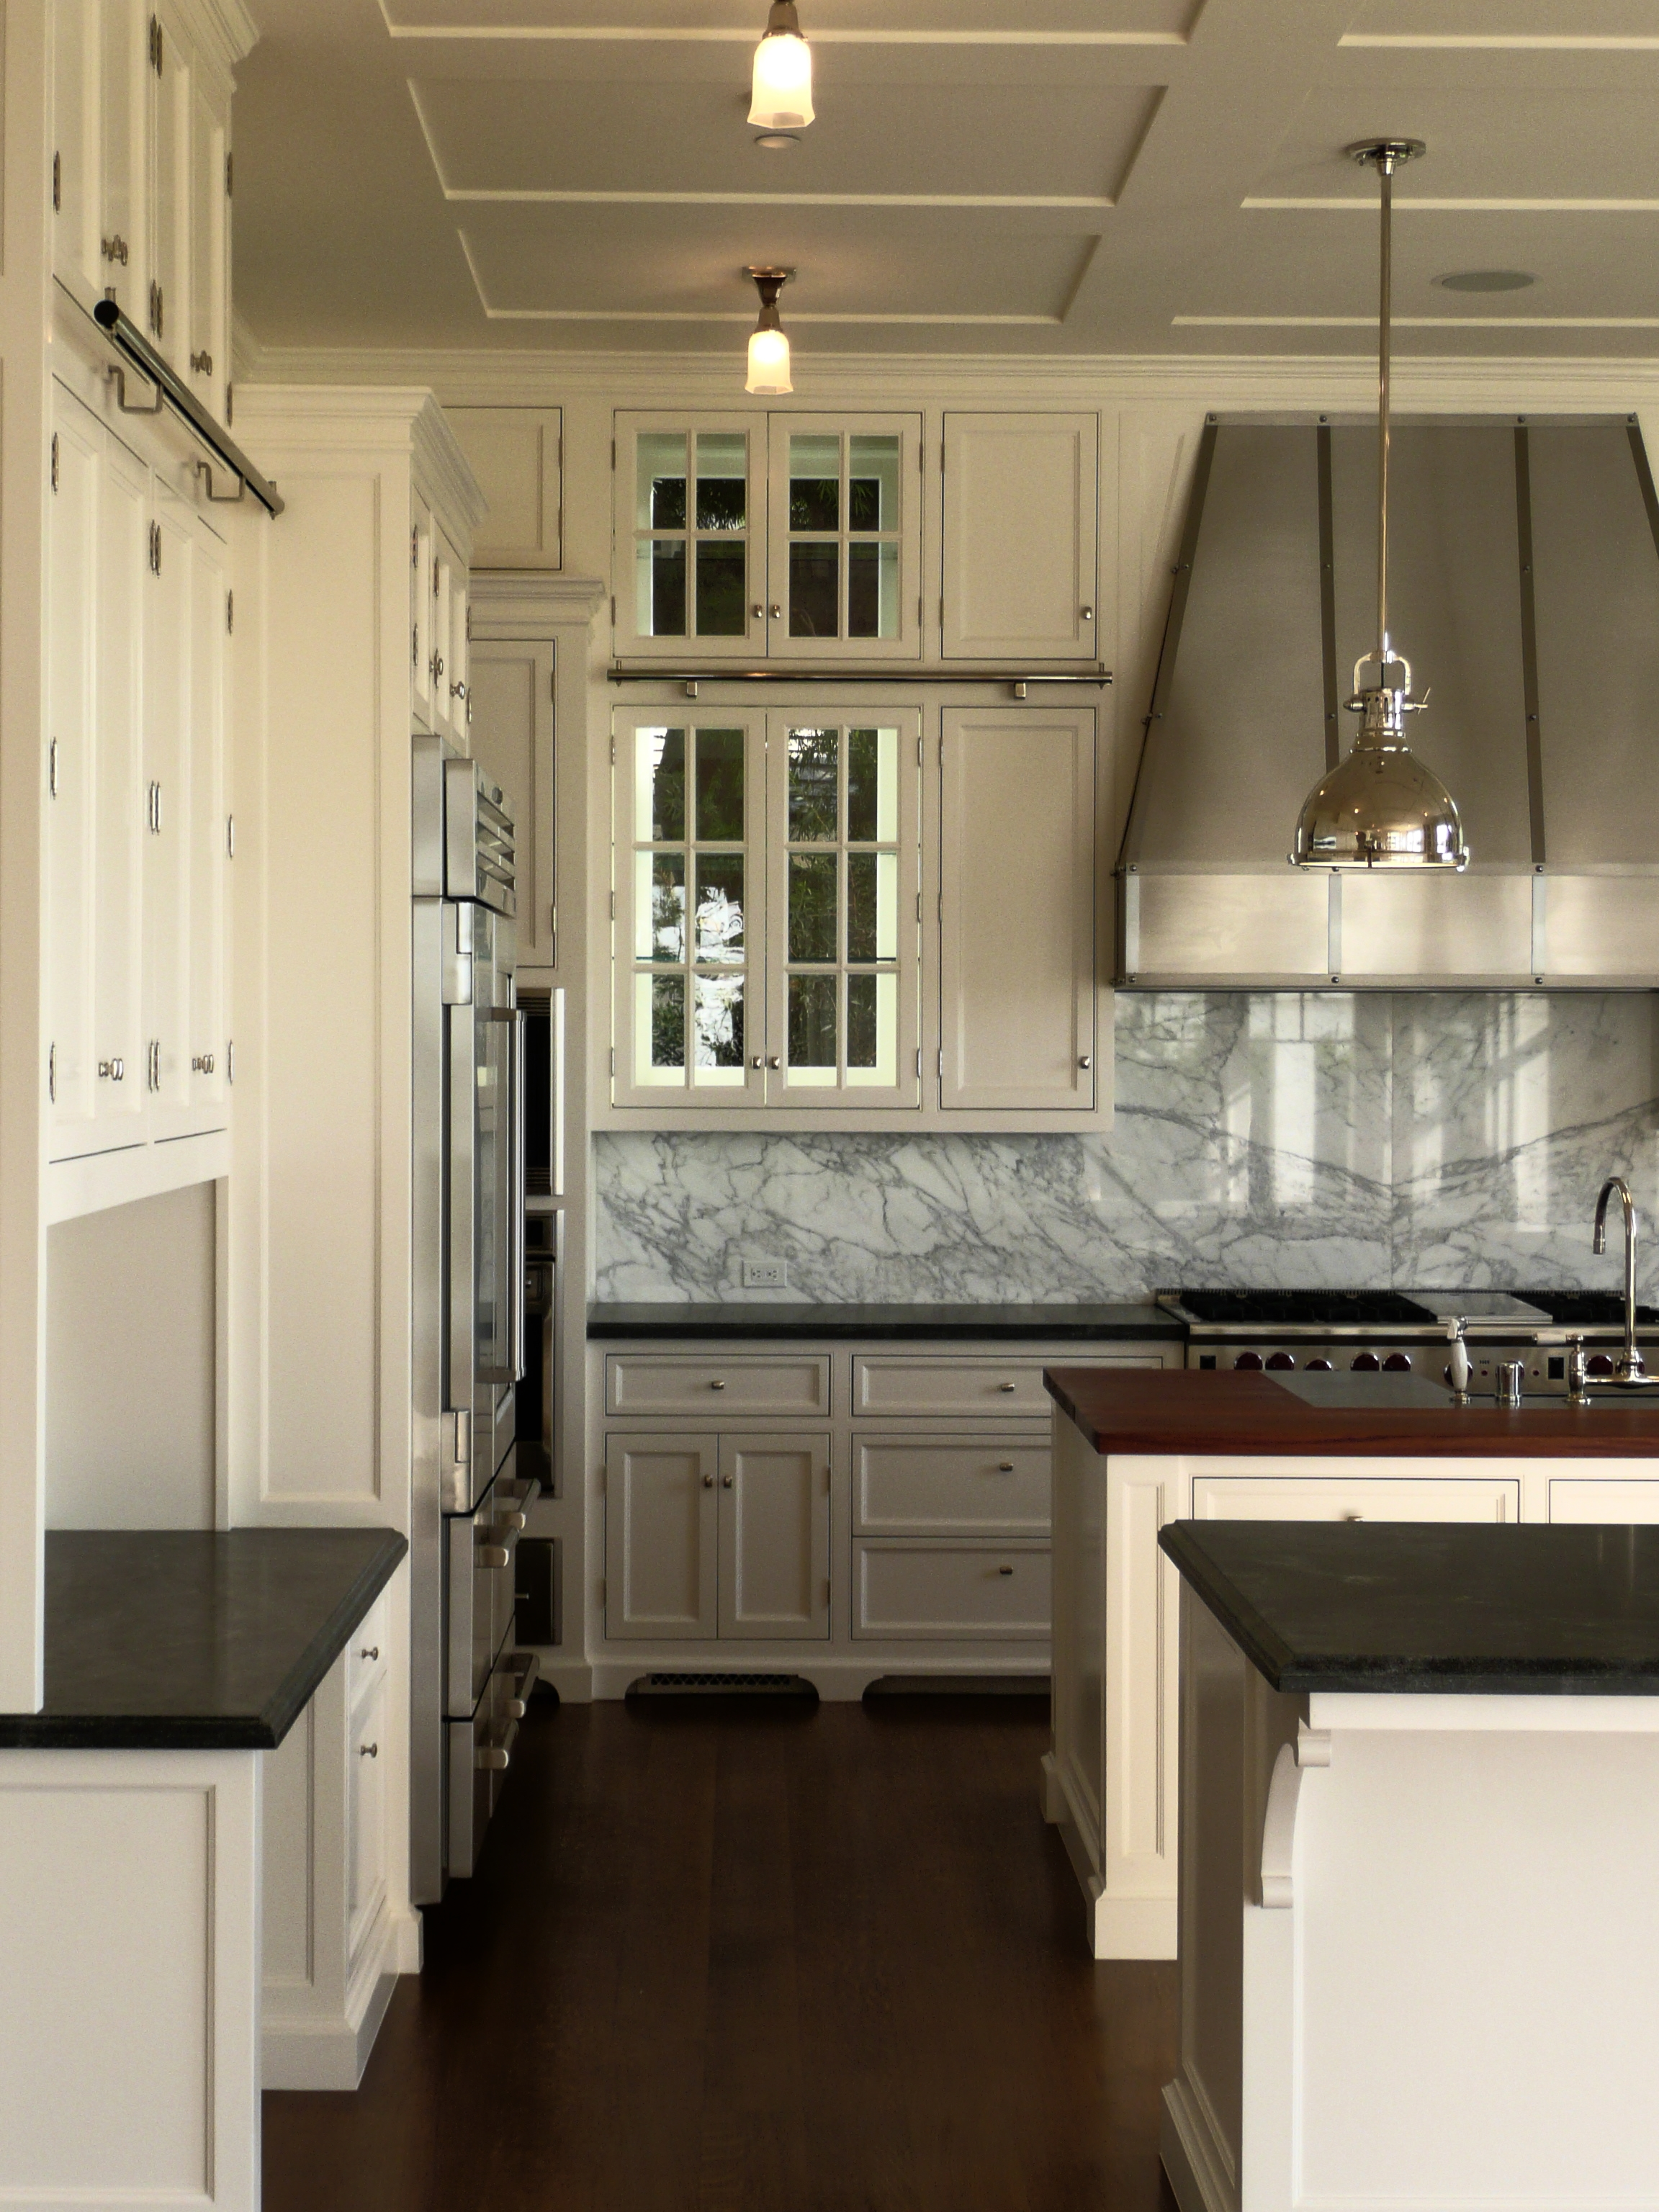 Farrow & Ball kitchen.jpg